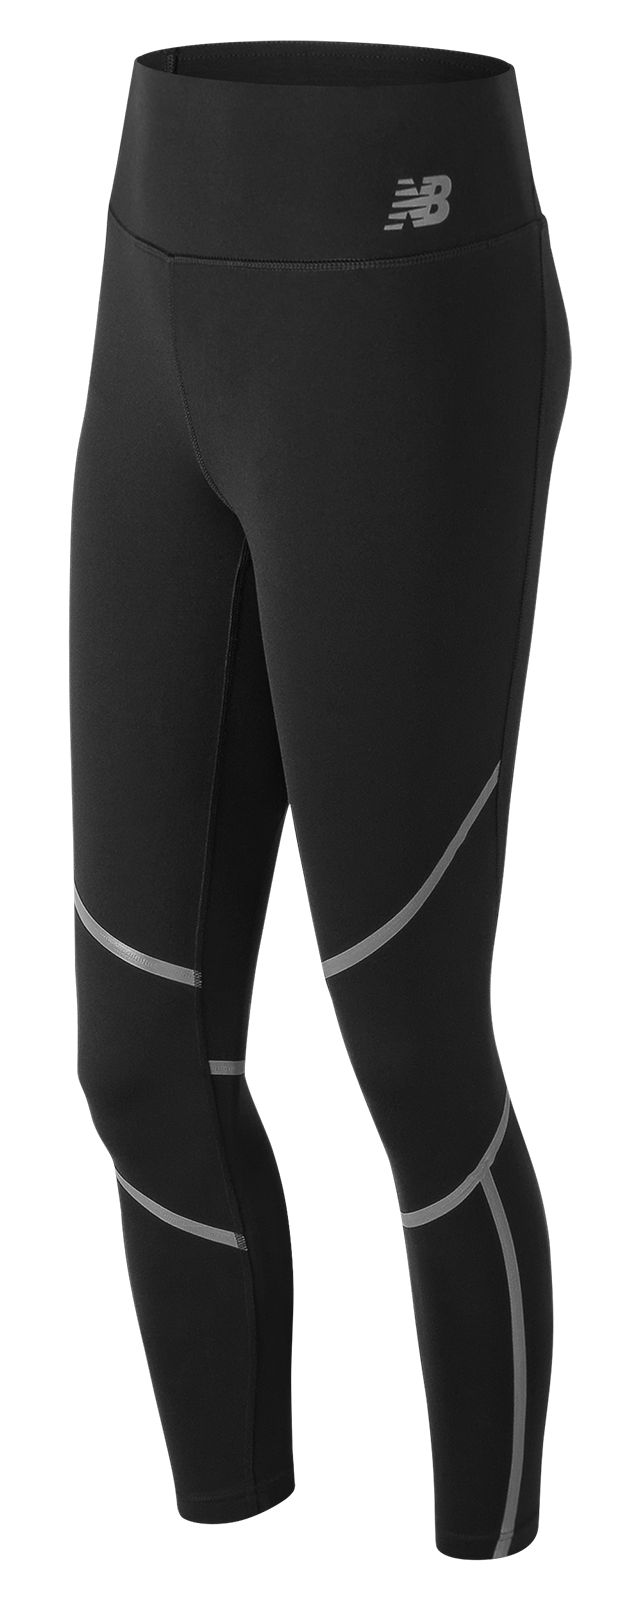 Women's Intensity Tight